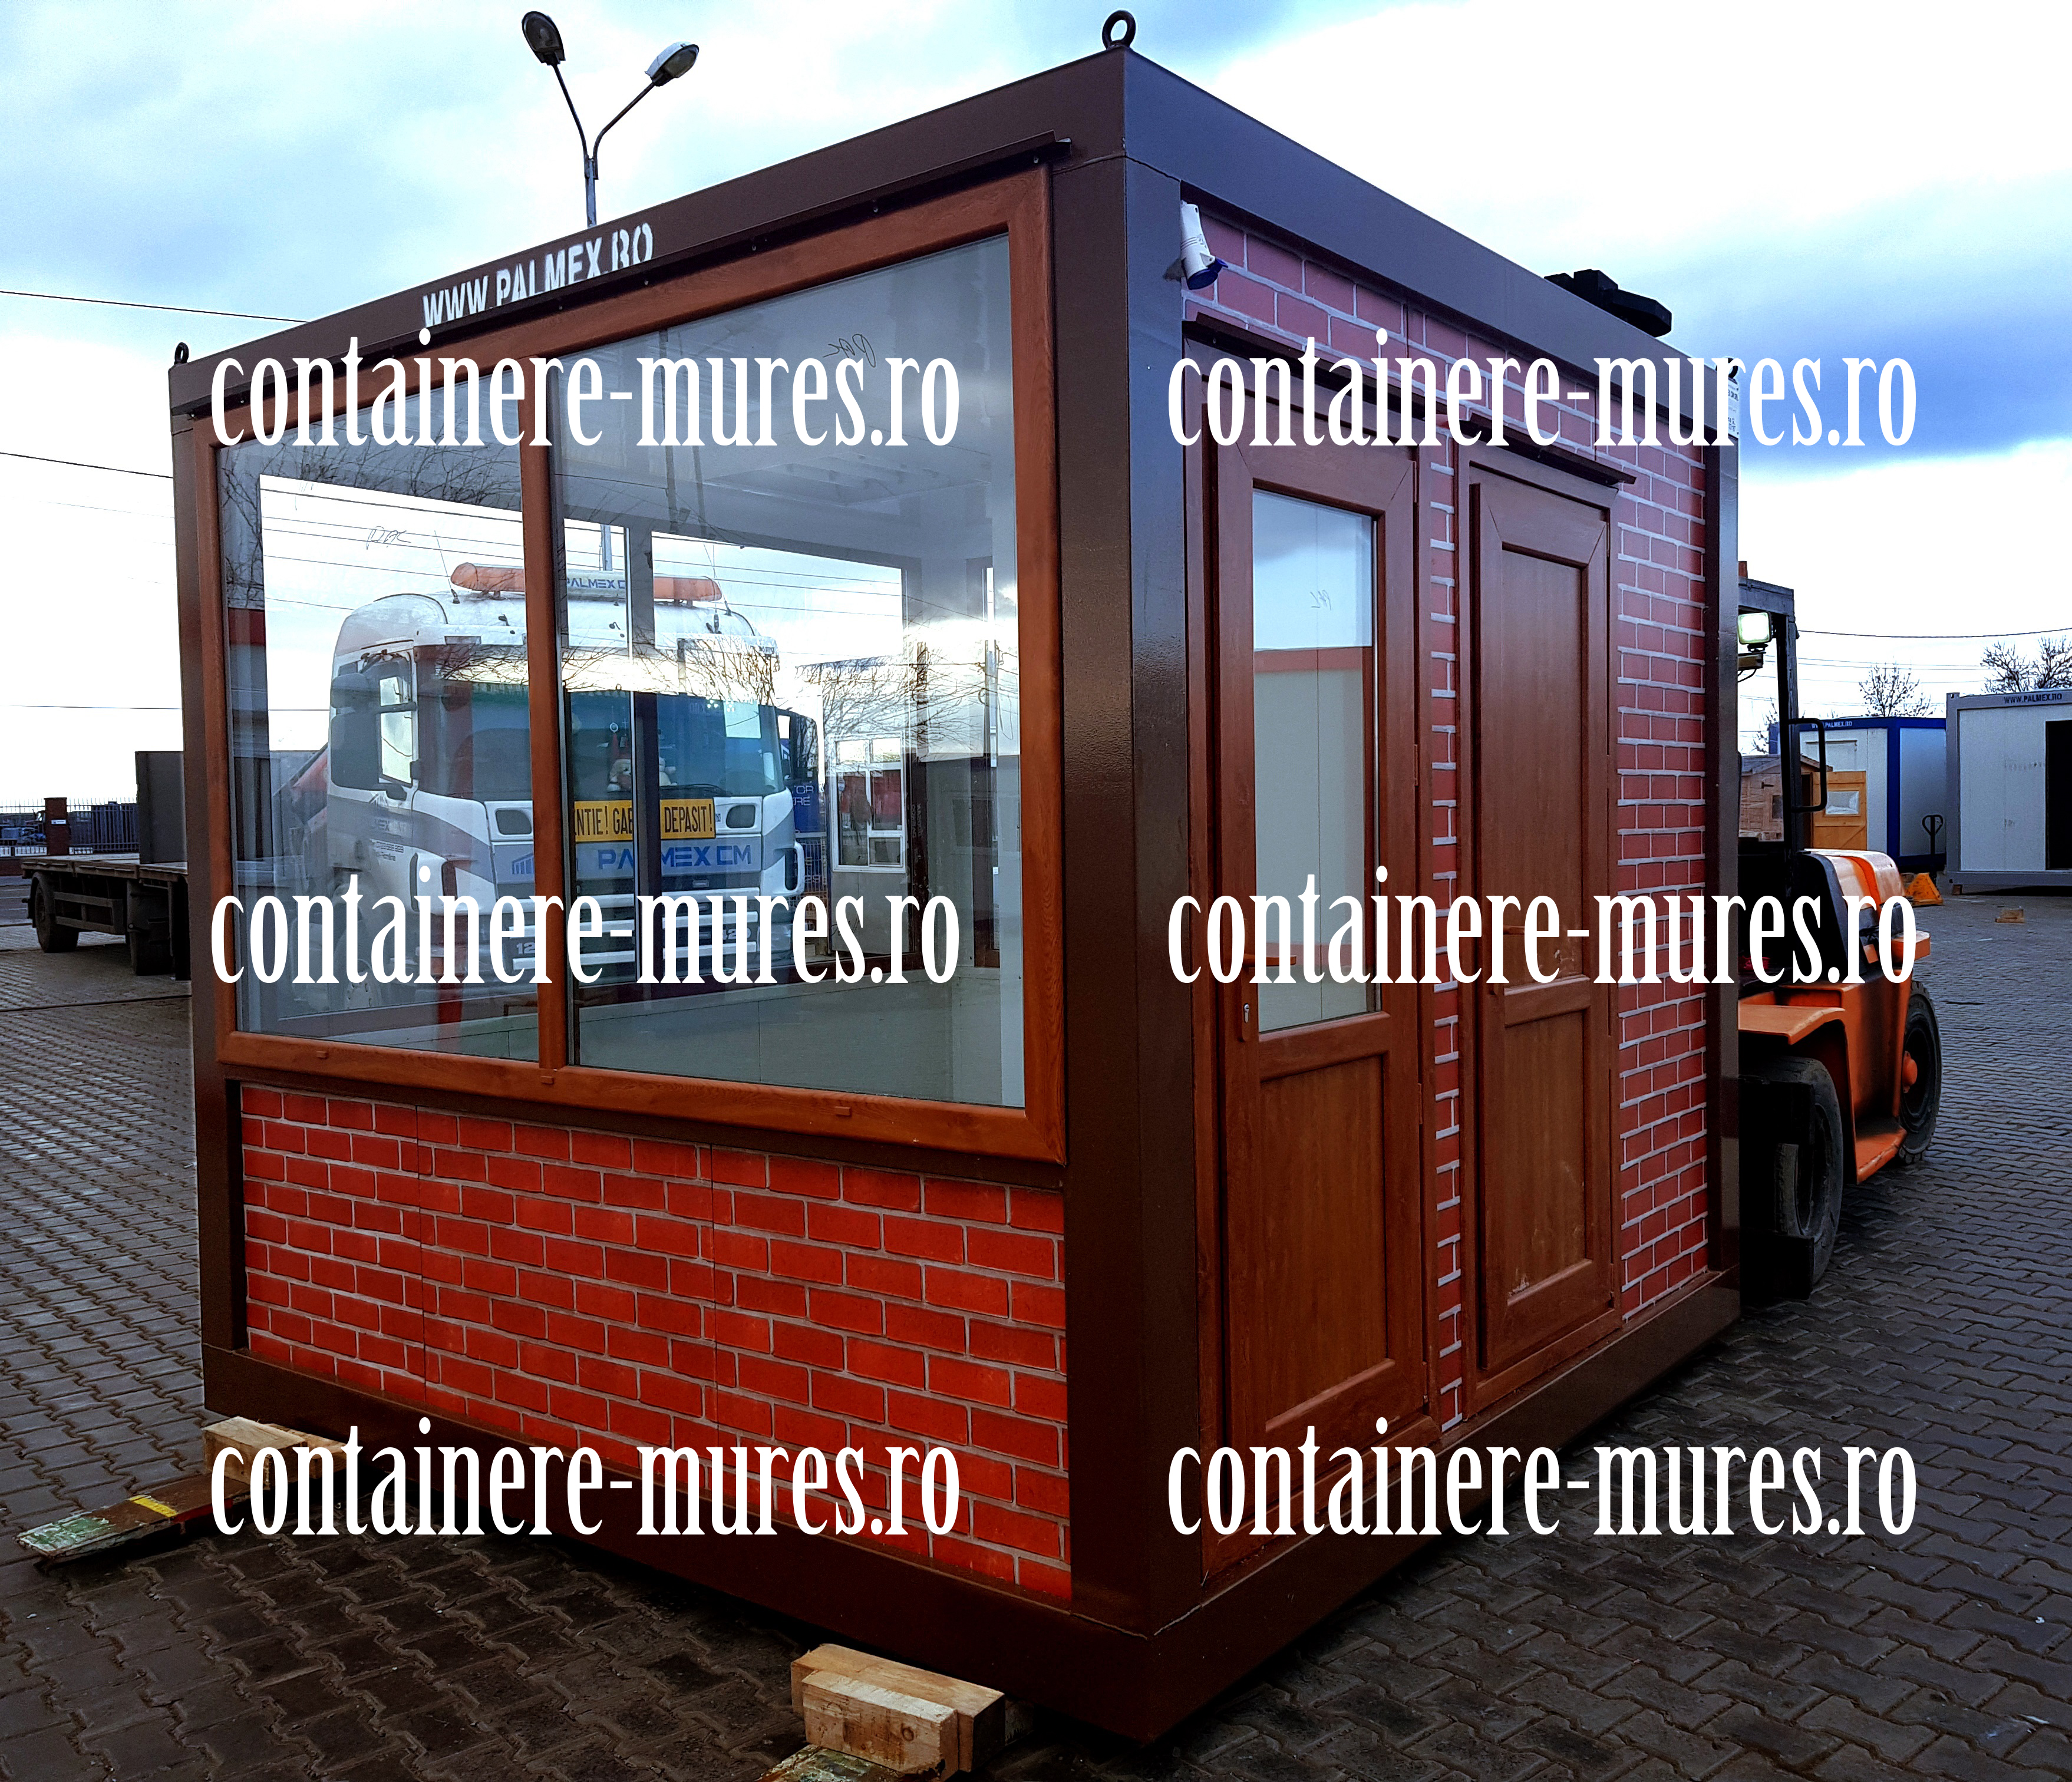 casa containere pret Mures